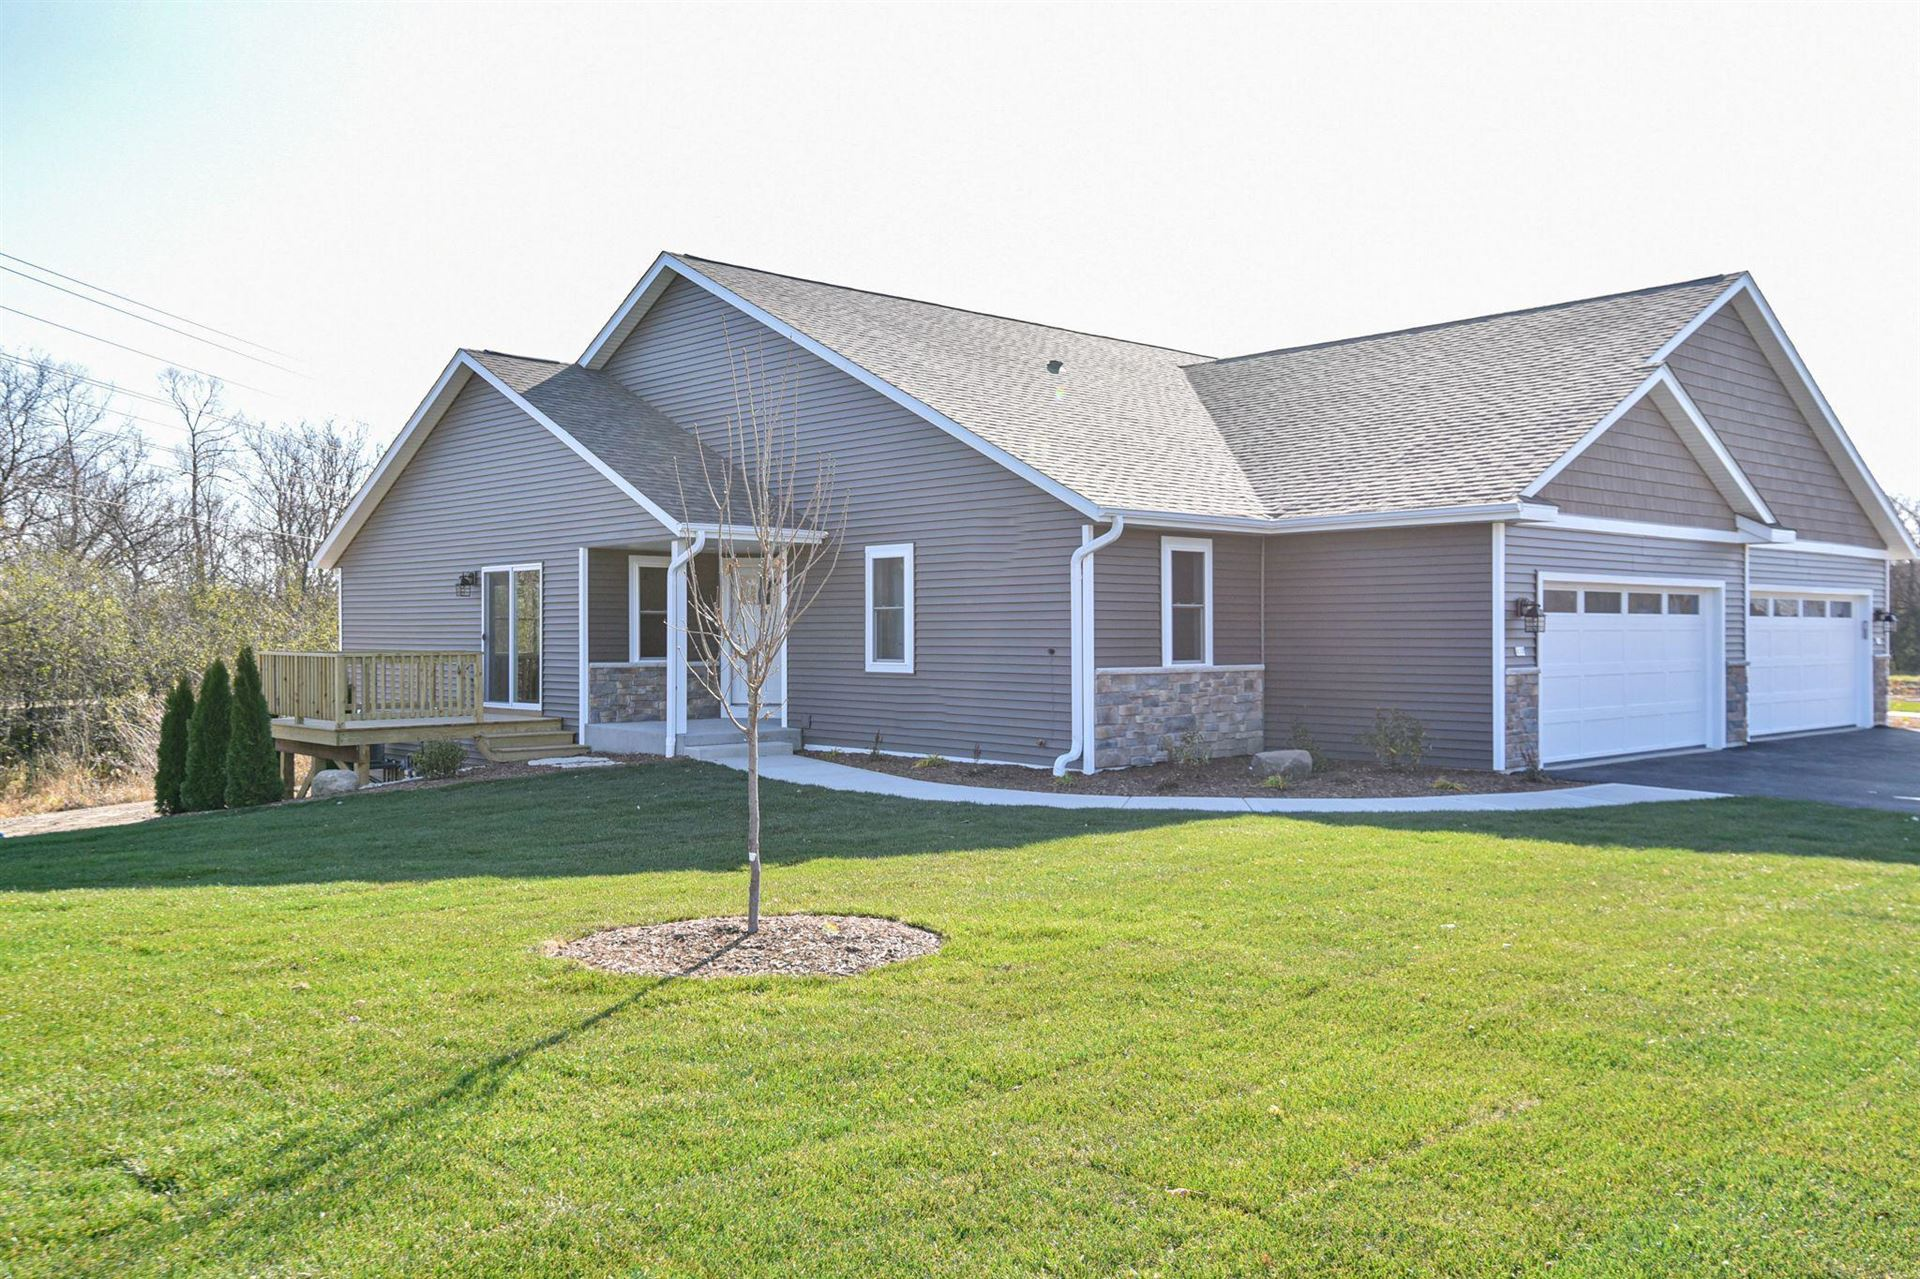 315 Trailview Crossing, Waterford, WI 53185 - #: 1702416